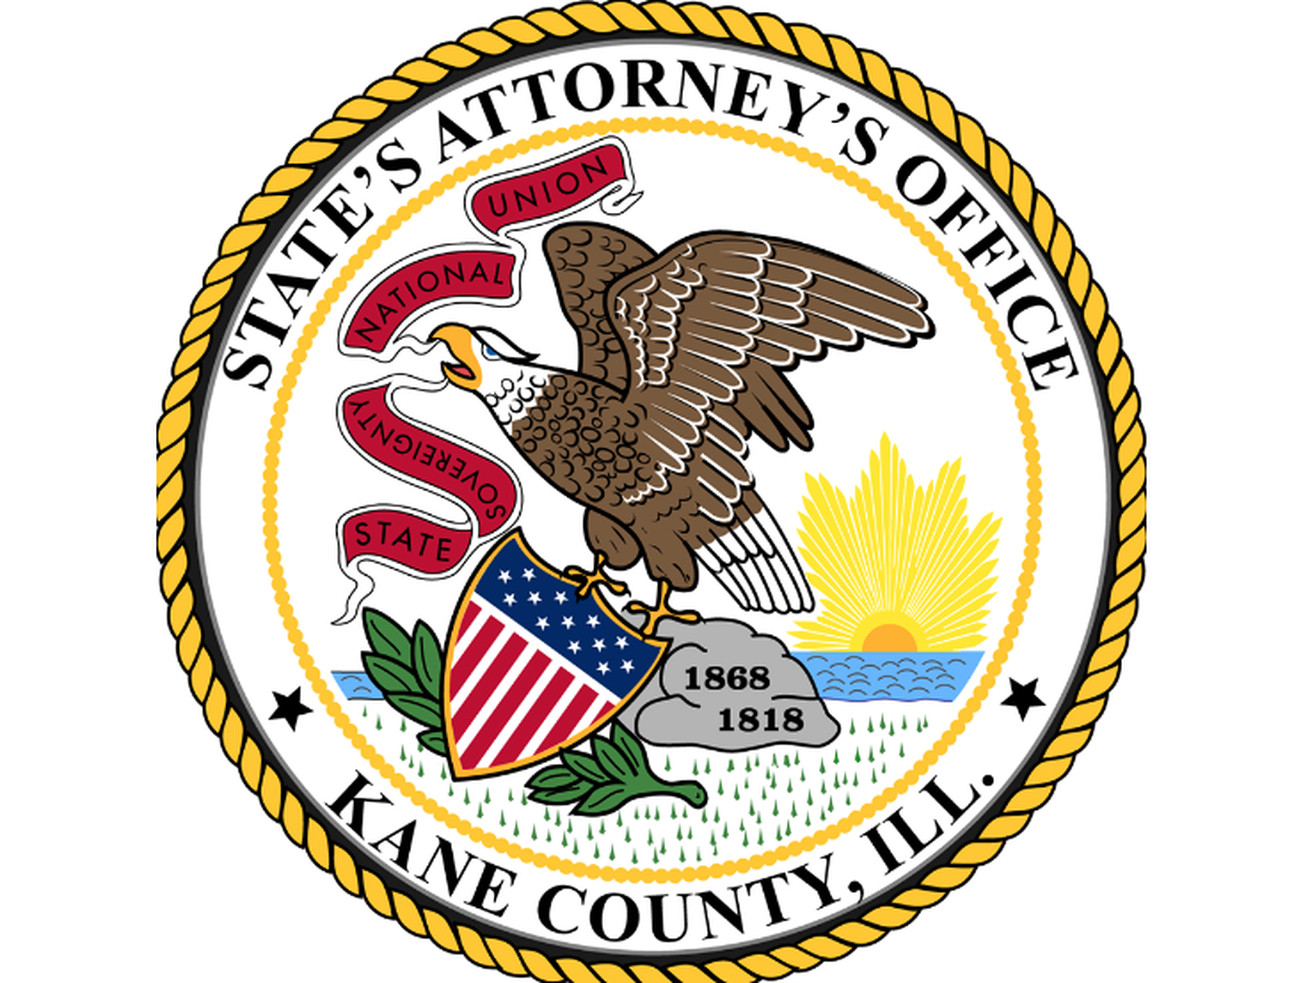 Kane County State's Attorney's Office